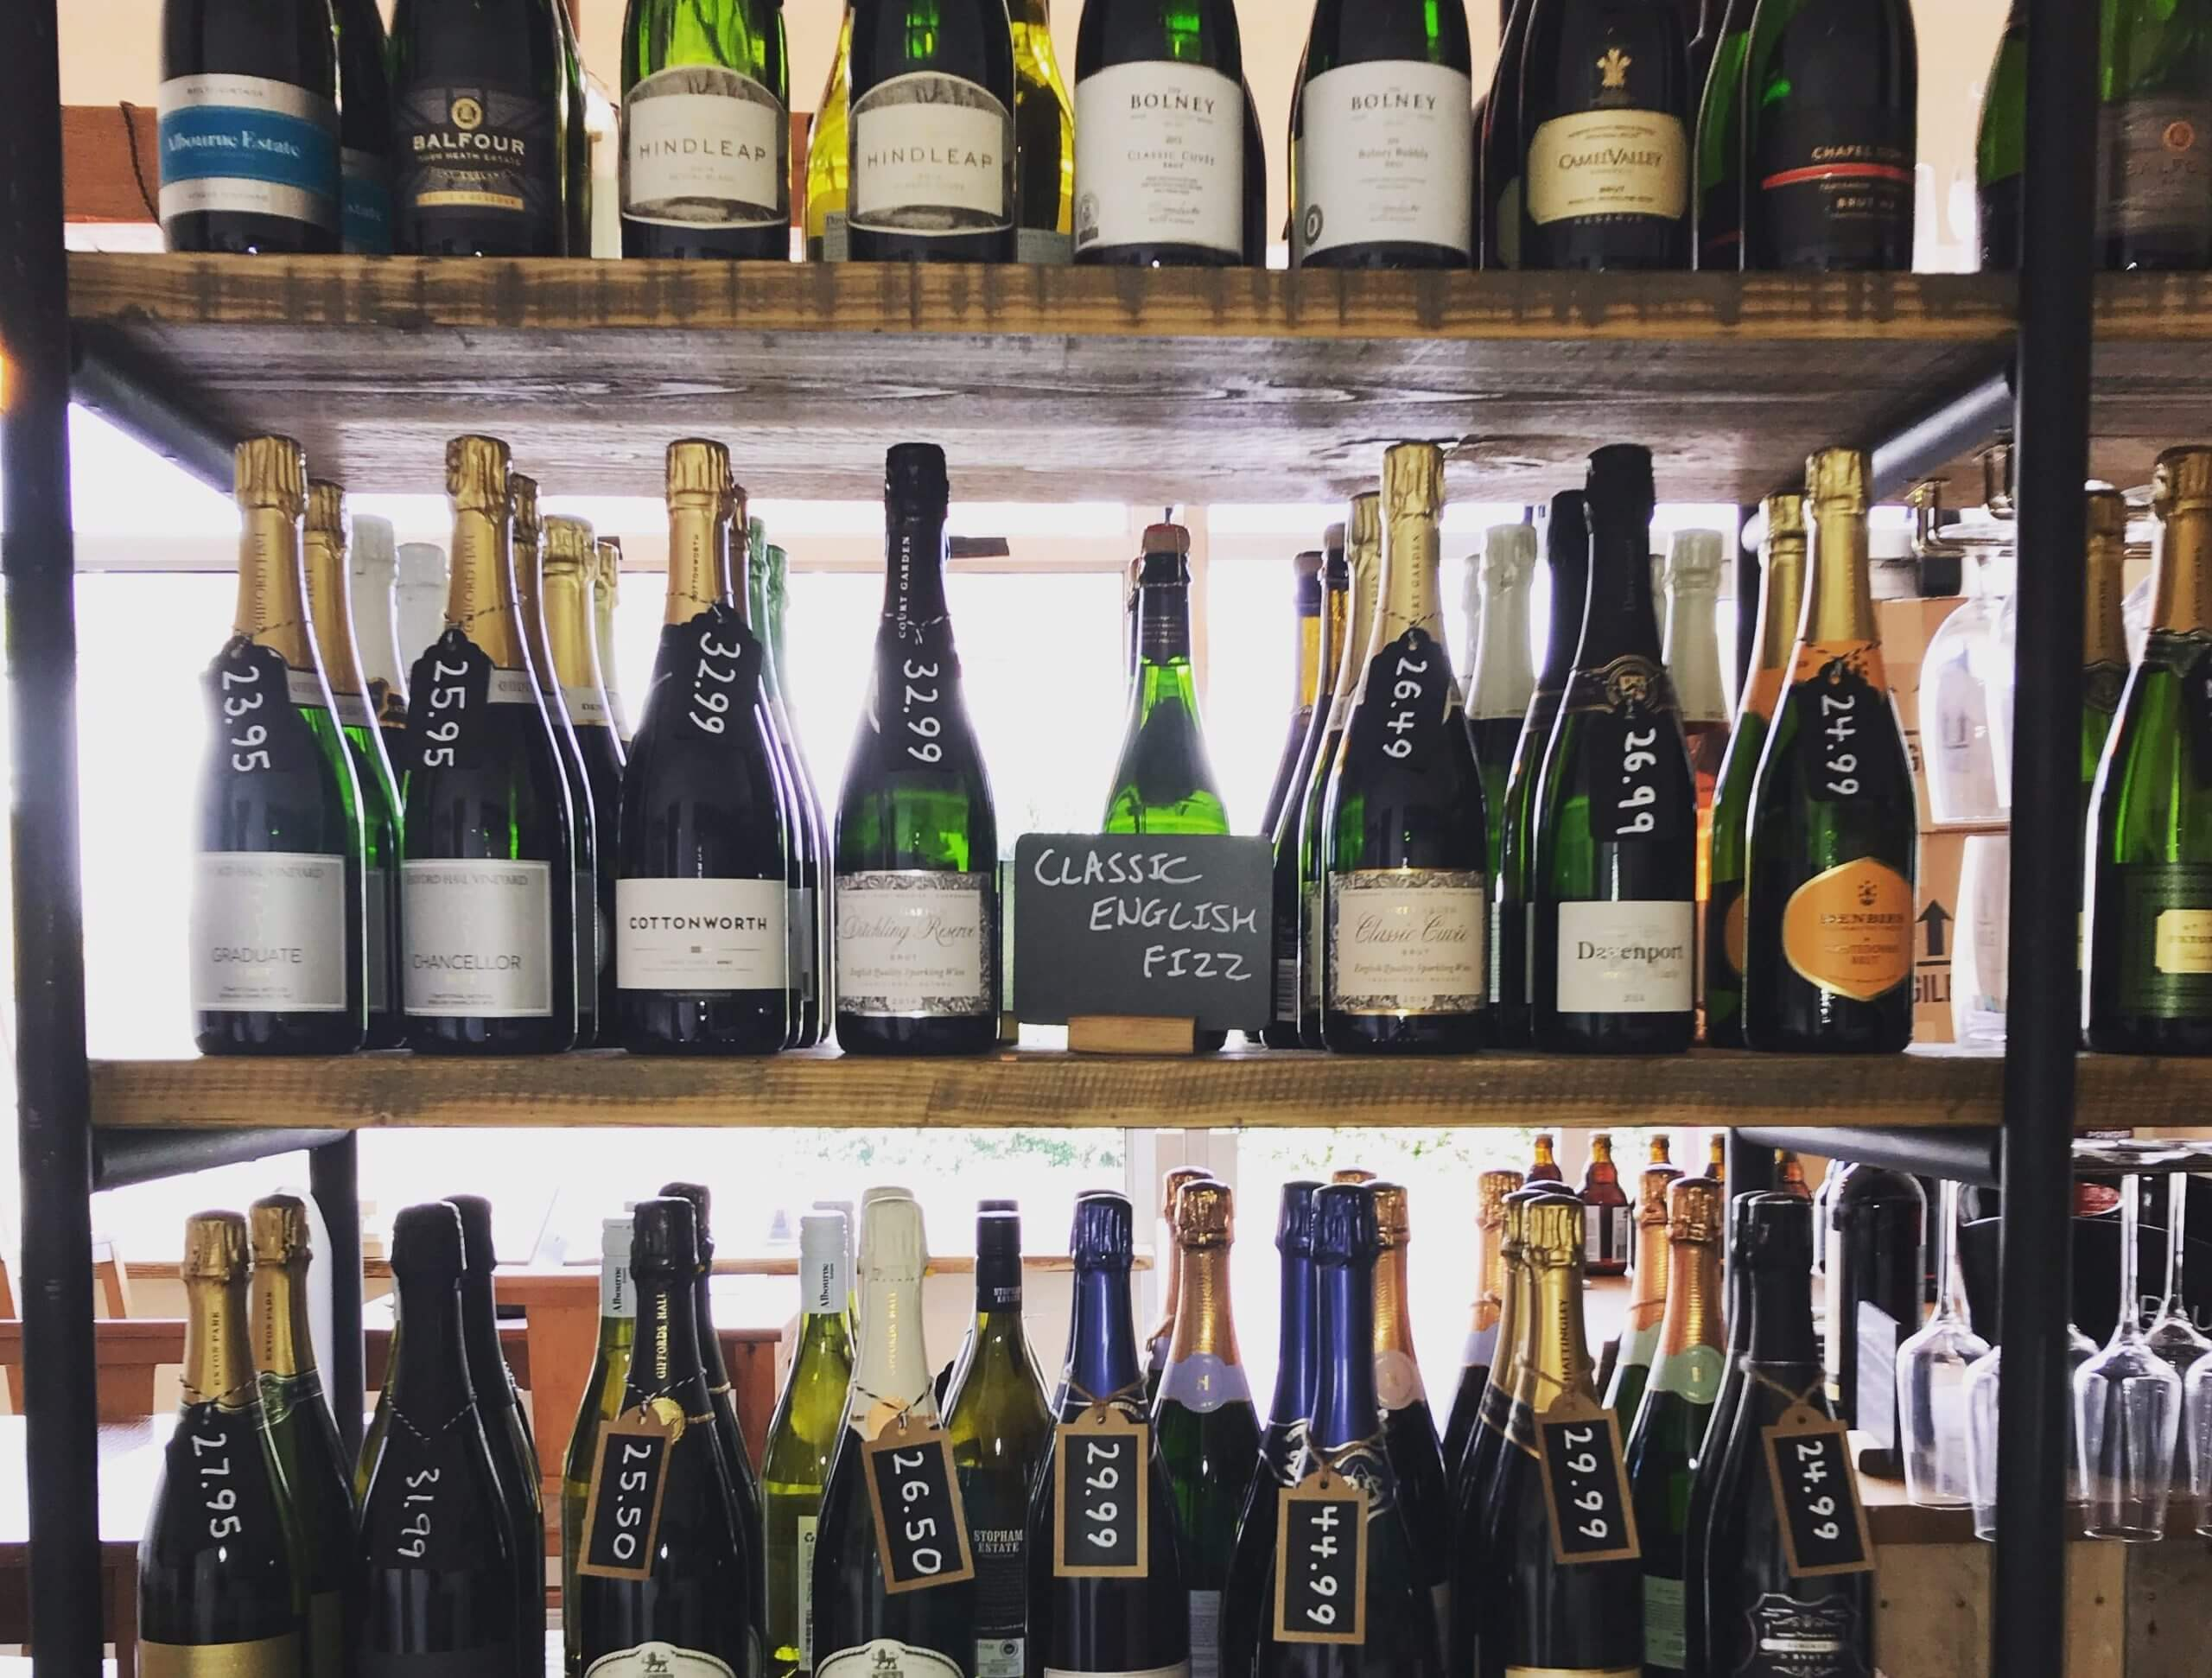 English Sparkling Wines